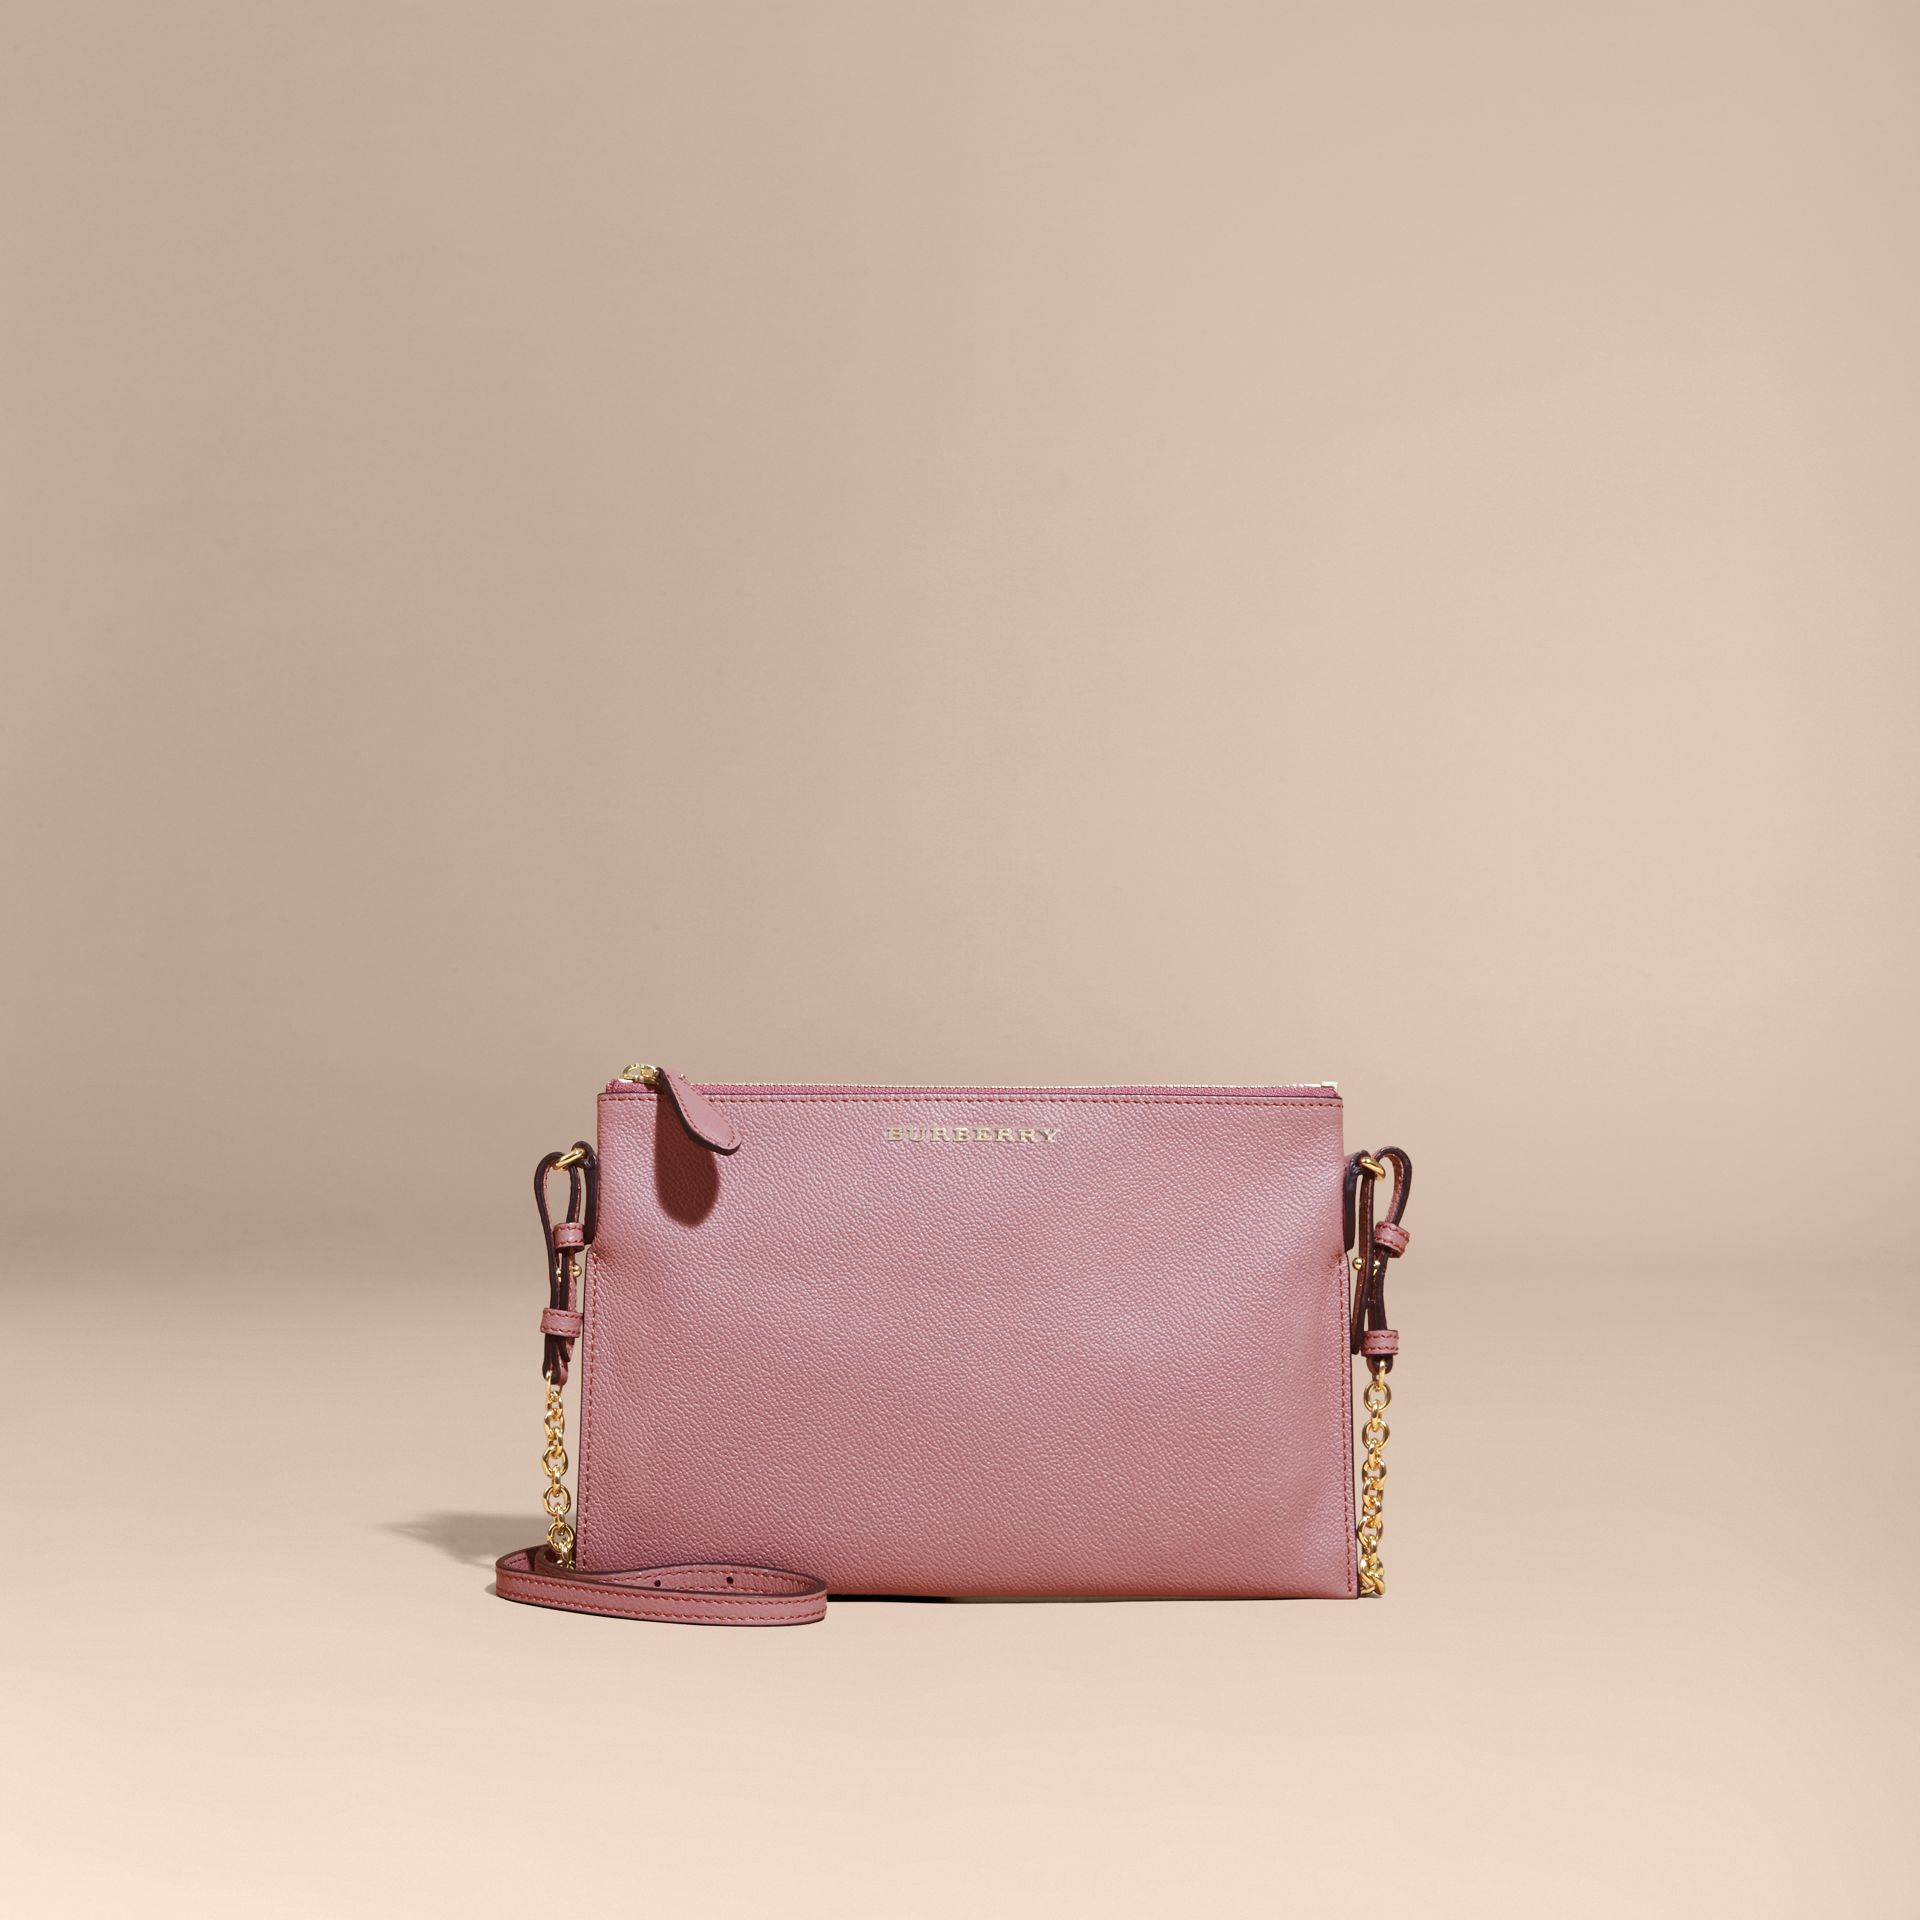 Leather Clutch Bag with Check Lining in Dusty Pink - Women | Burberry - gallery image 9